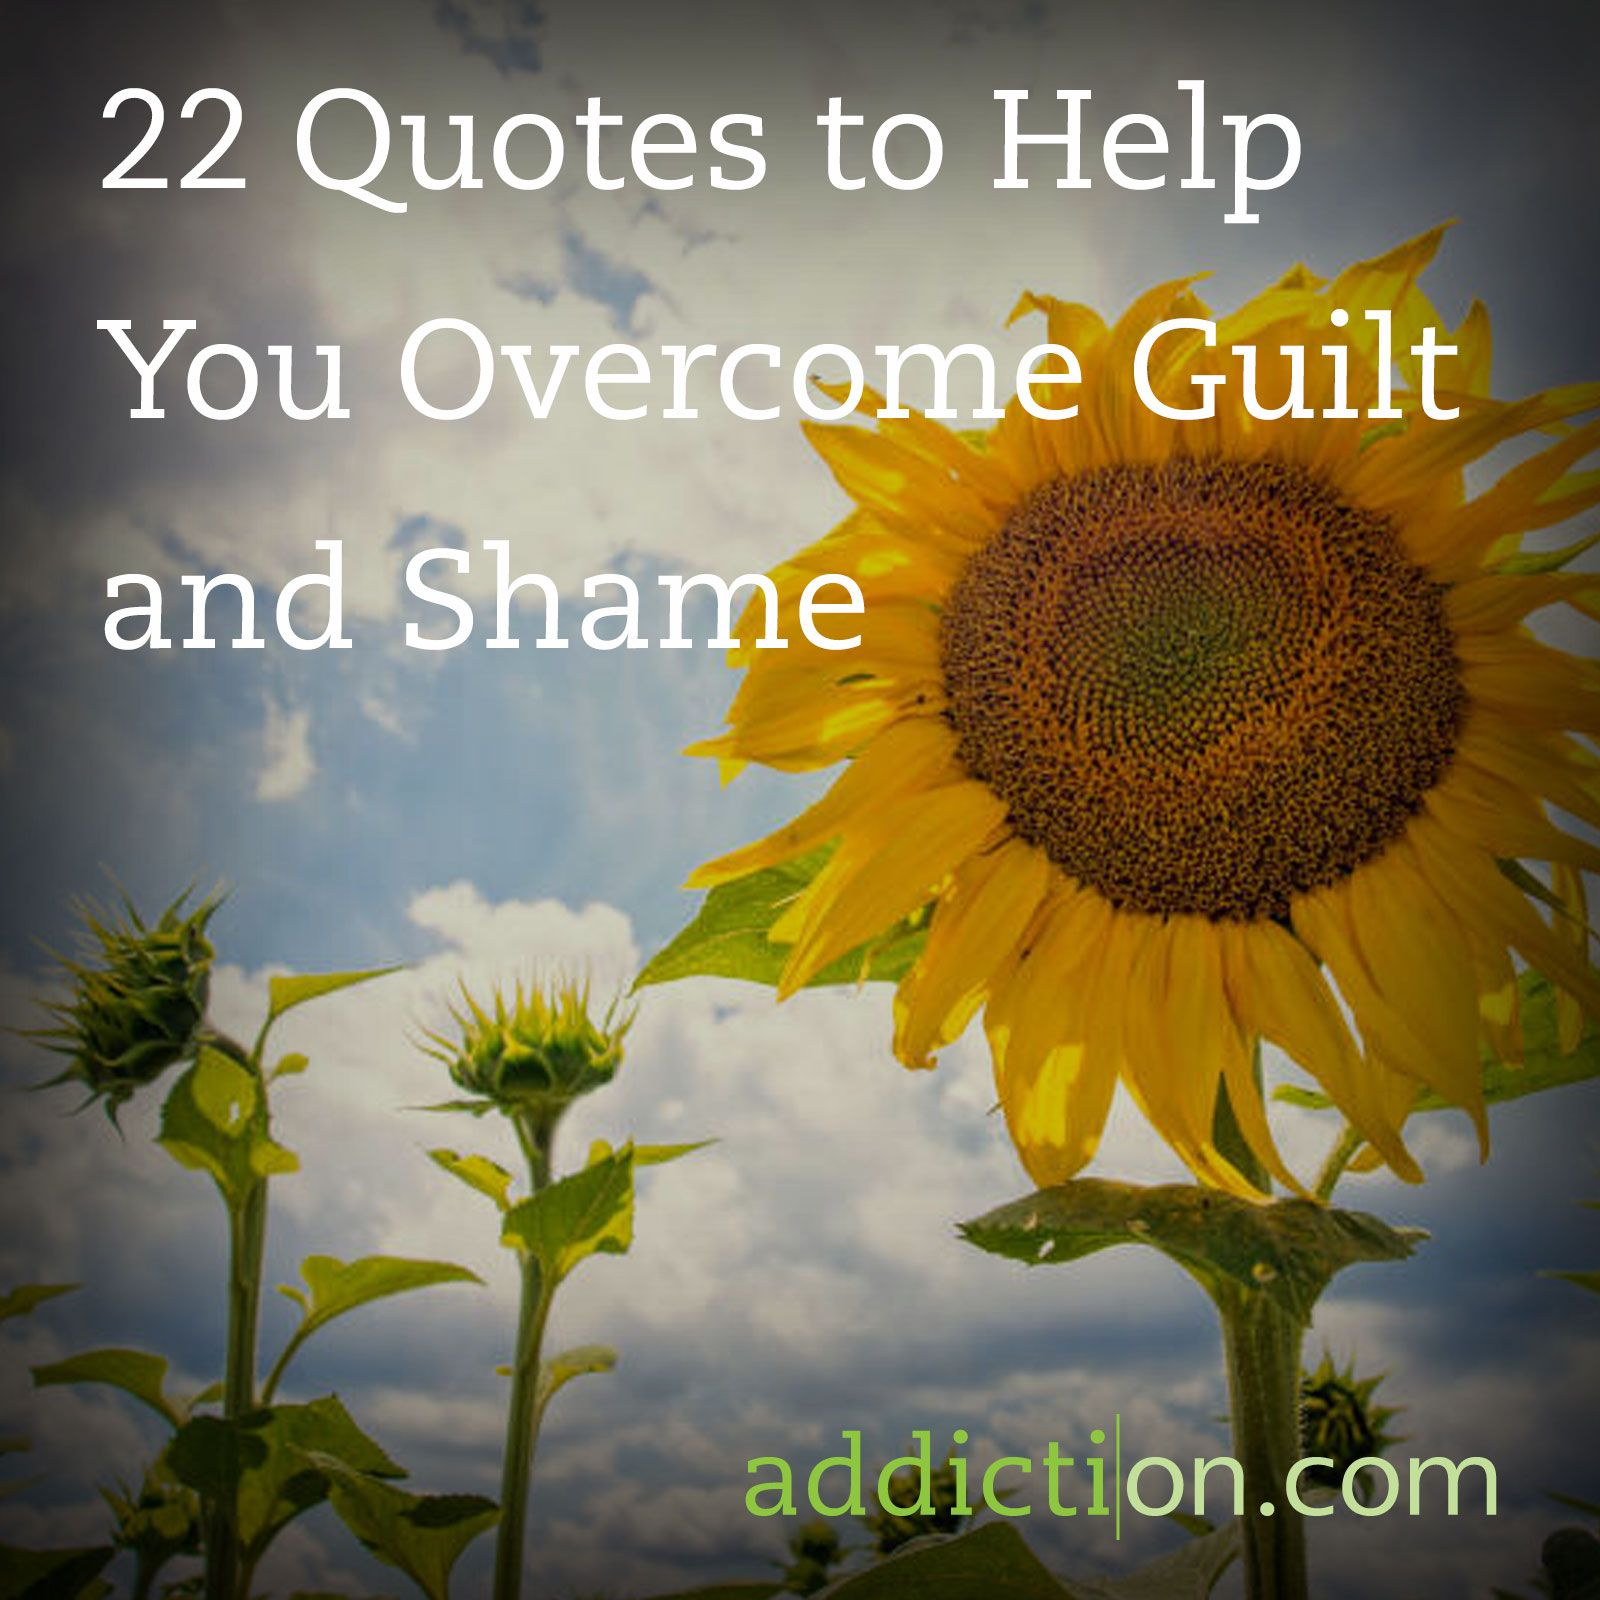 22 Quotes To Help You Overcome Guilt And Shame